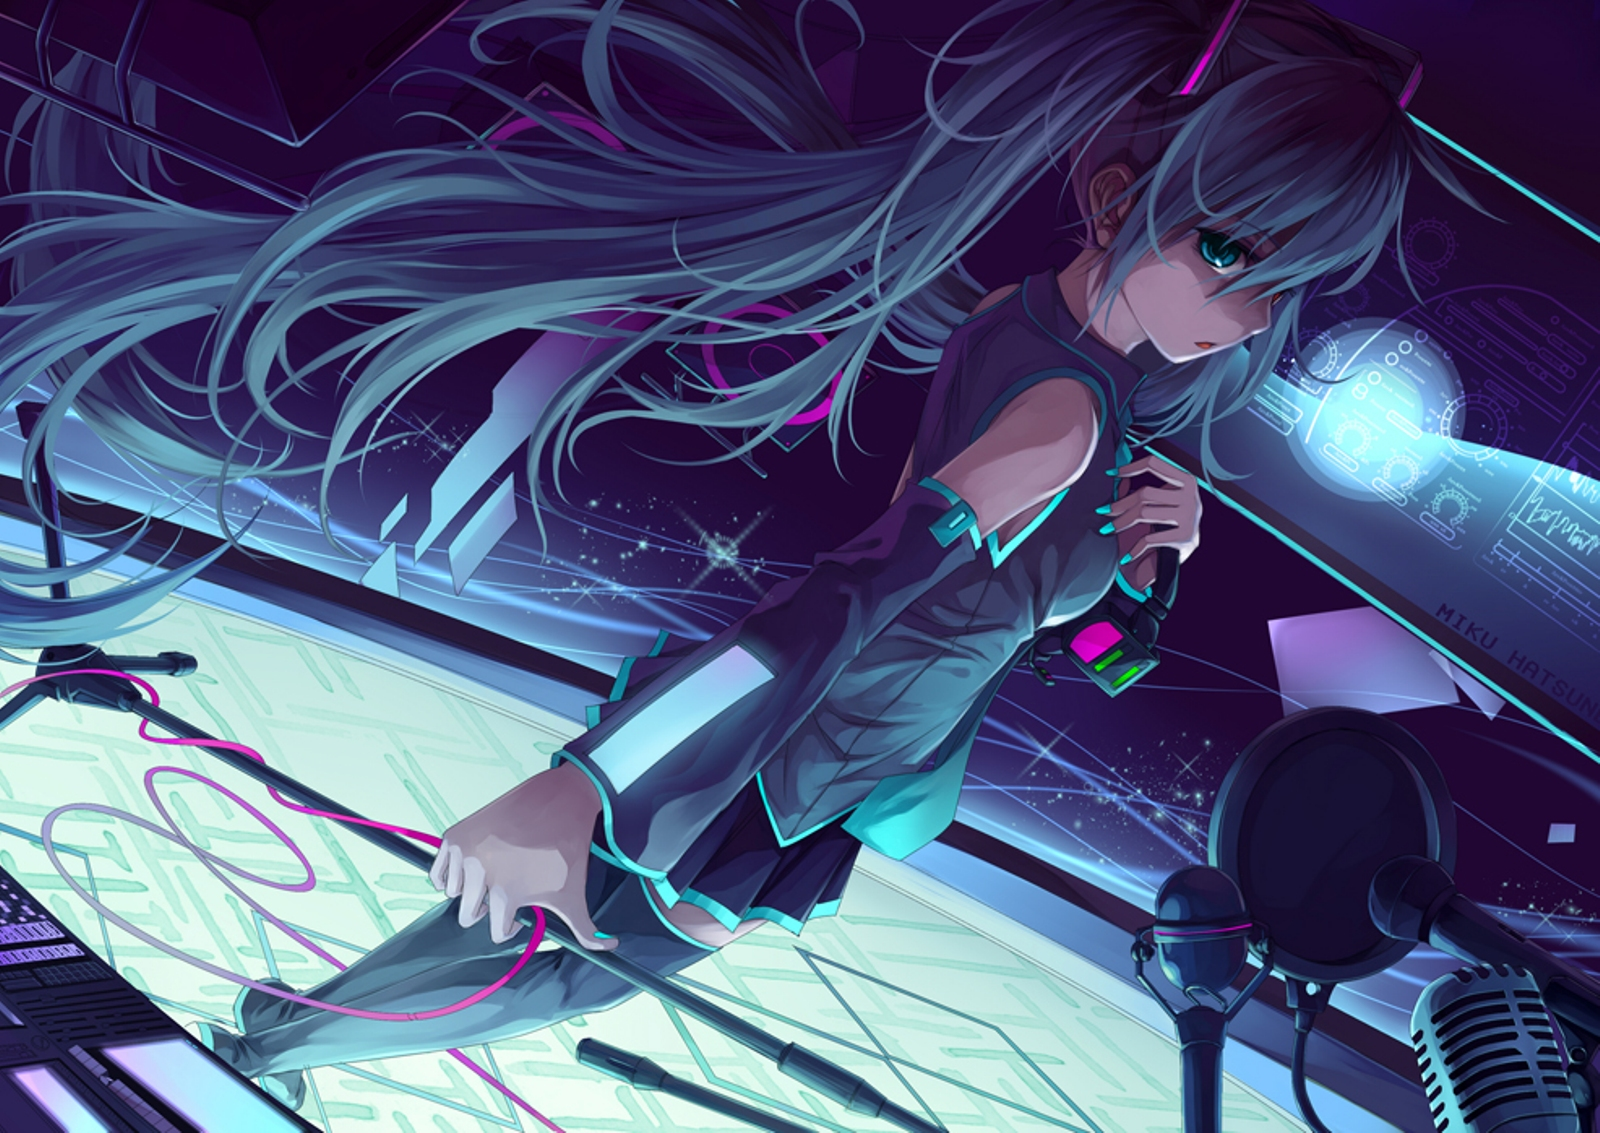 Anime - Vocaloid  - Miku - Hatsune - Cg - Digital - Girl - Headphones Papel de Parede